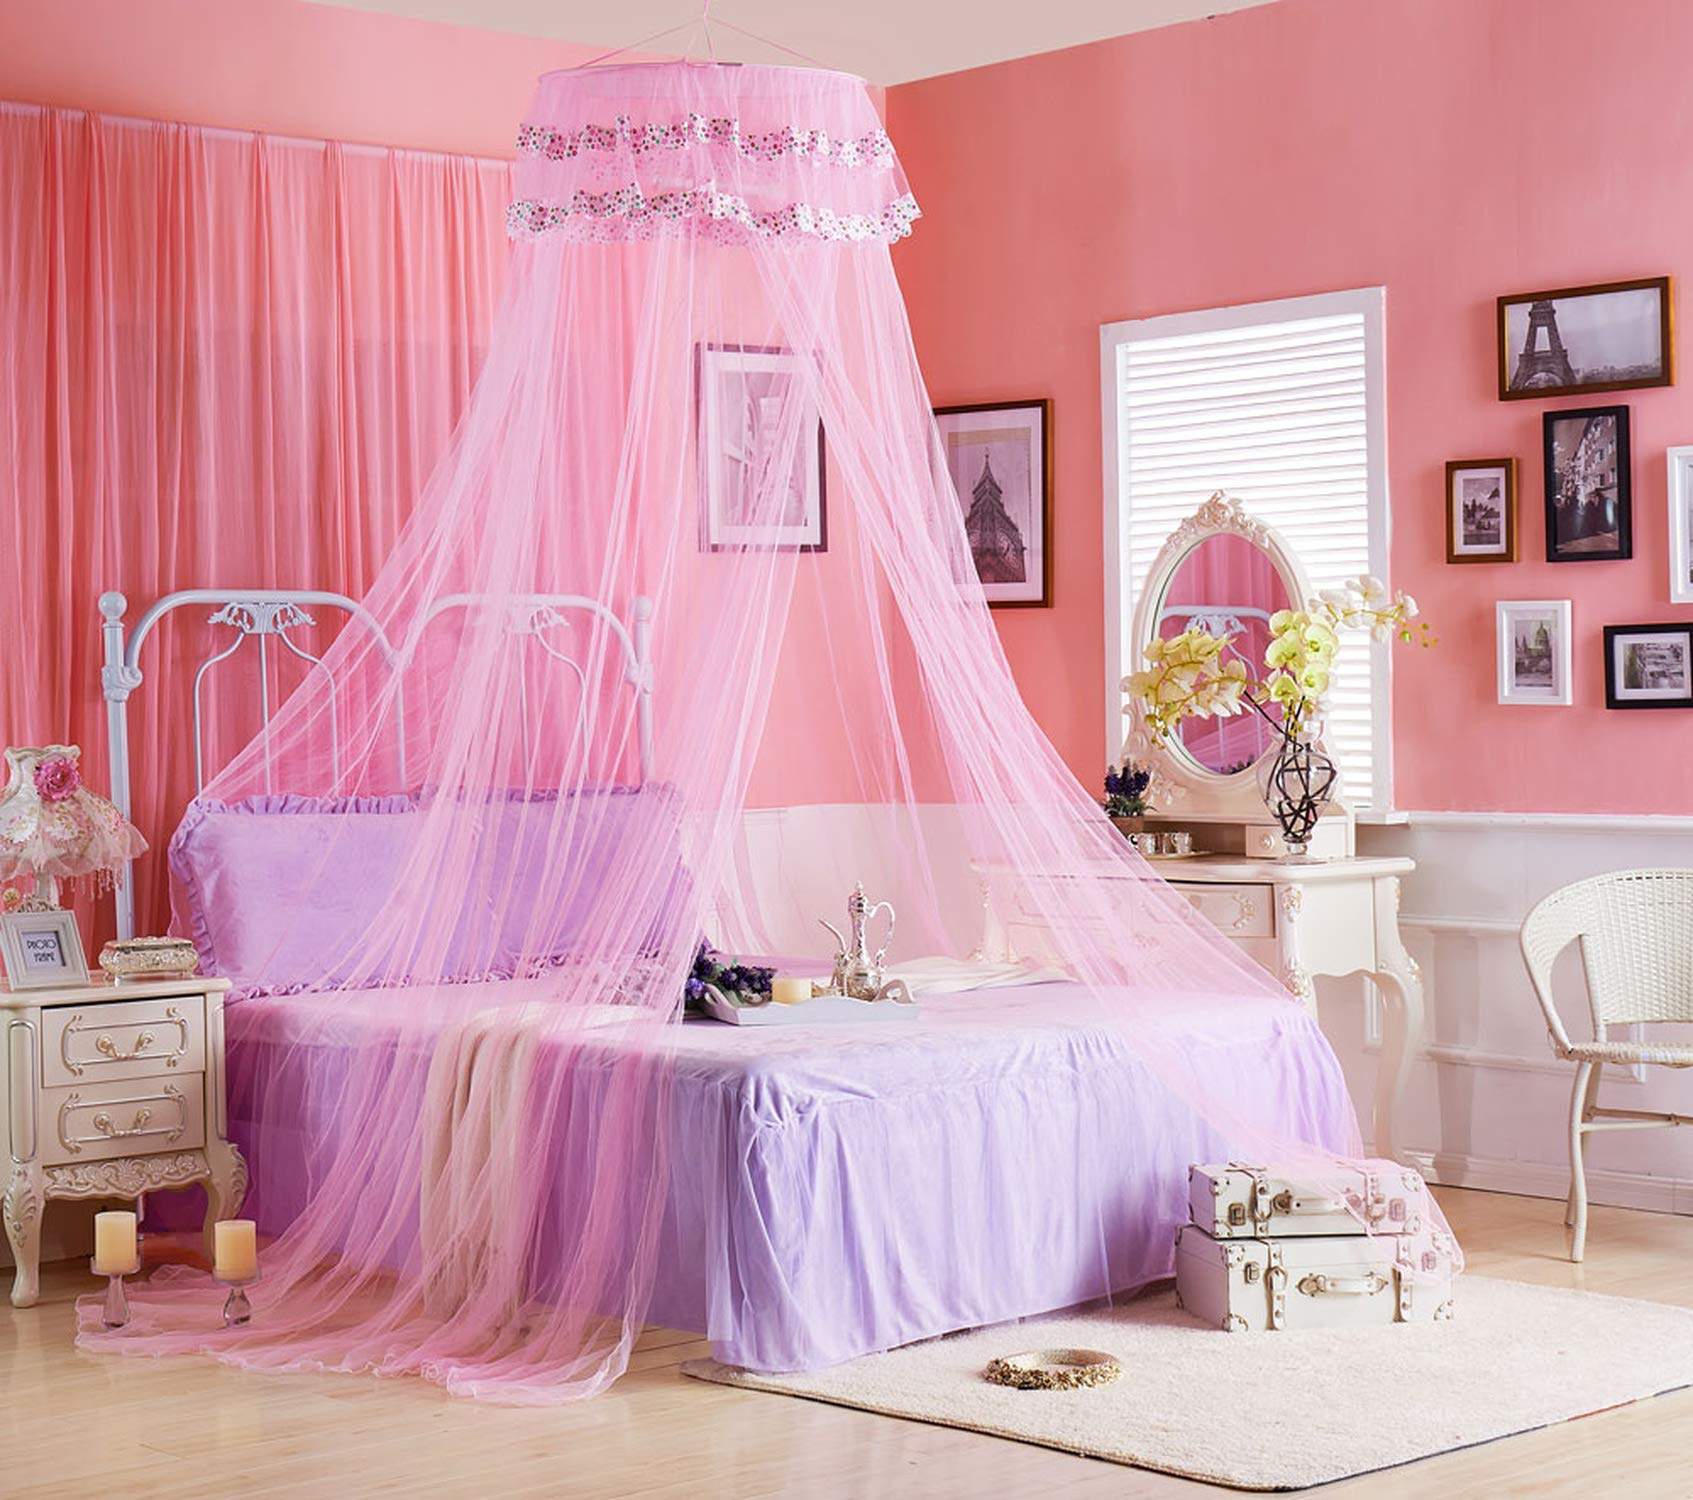 Portable Mosquito Net for Bed Canopy Round Canopy Netting Mesh Lace Curtain Bed Tent Anti Bug Insert Cibinlik Purple Nets,Pink,1.5m (5 feet) Bed by SuWuan mosquito net (Image #2)